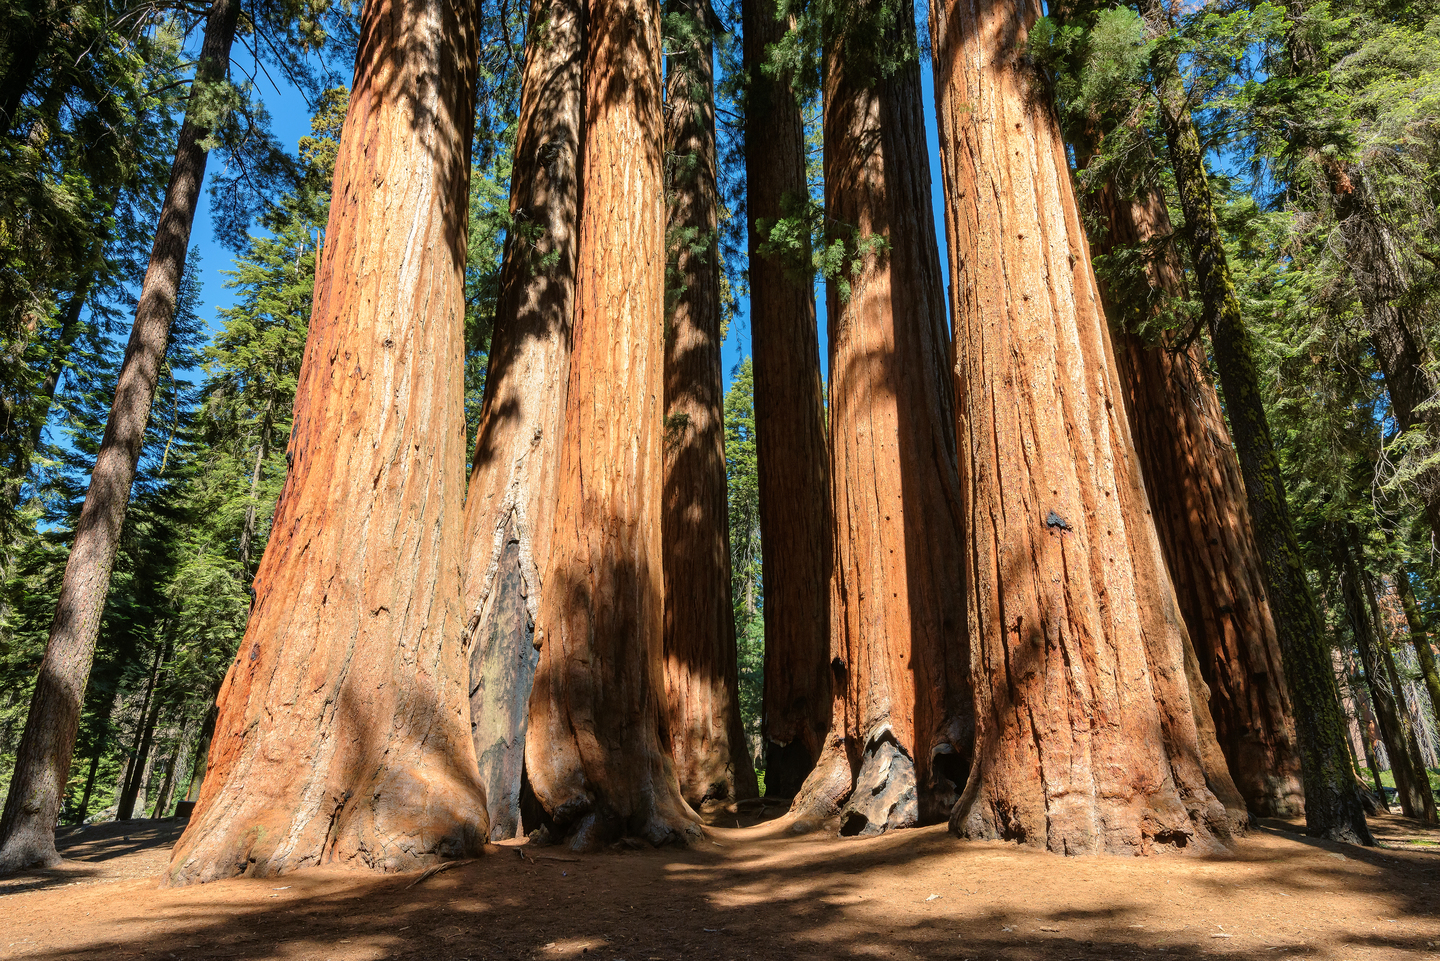 Giant sequoia trees in national park